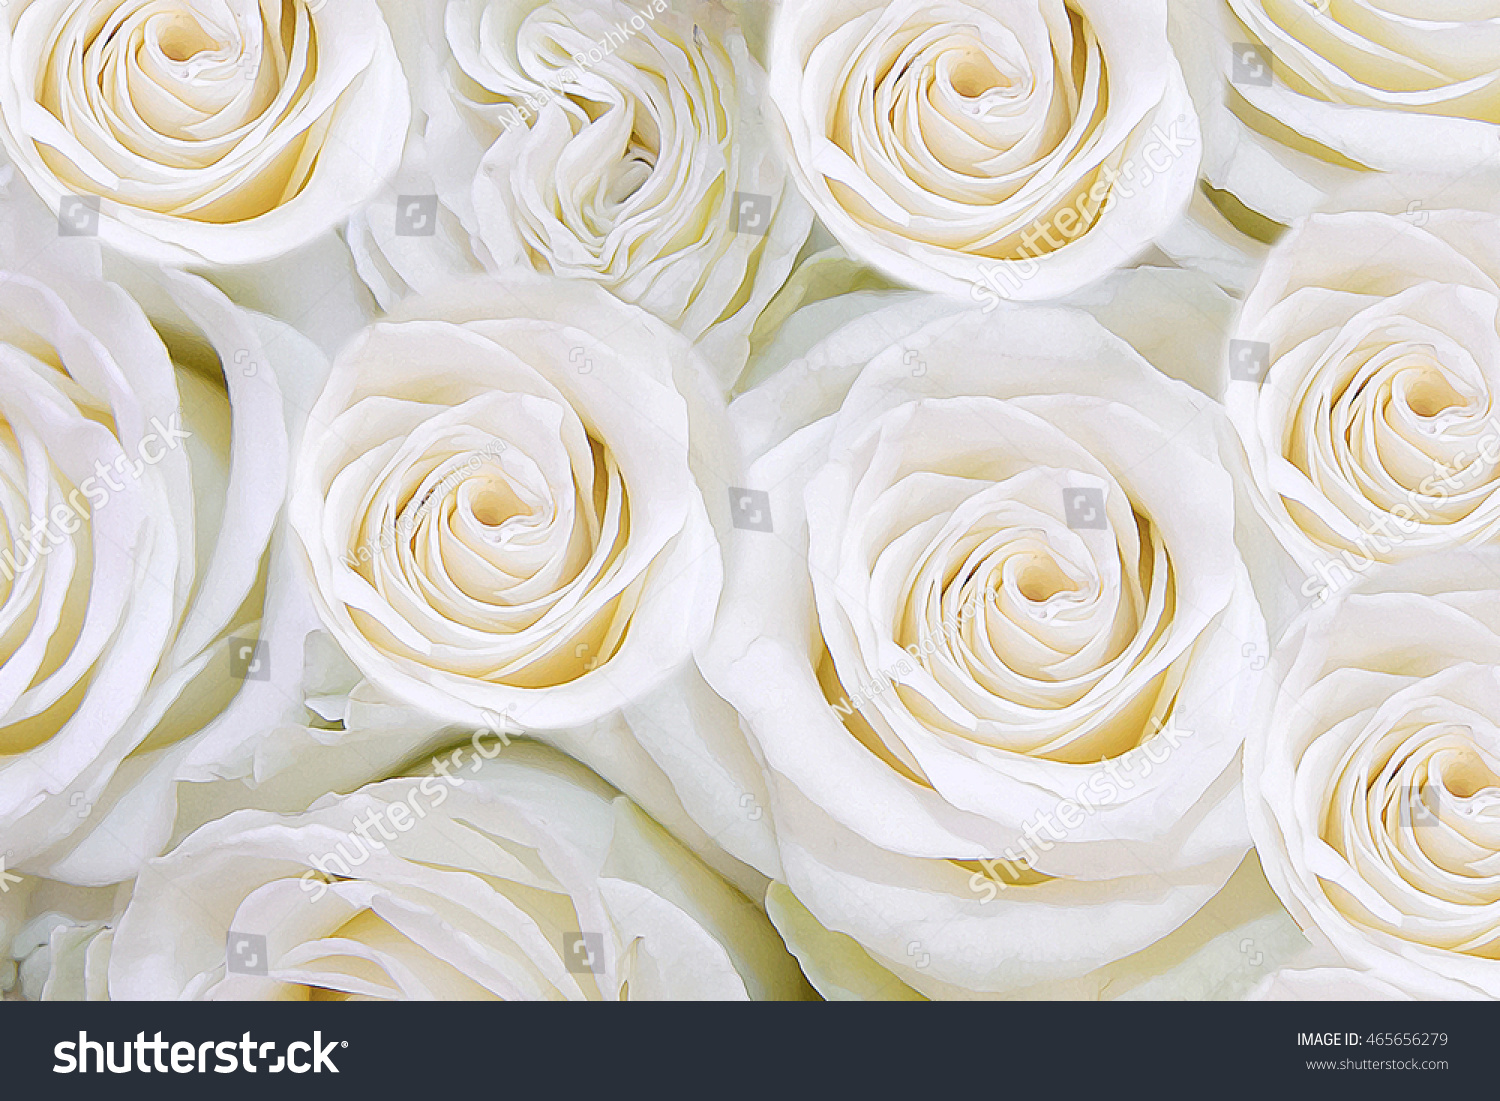 Background white roses texture petals delicate stock illustration background of white roses the texture of the petals of delicate flowers a symbol buycottarizona Choice Image